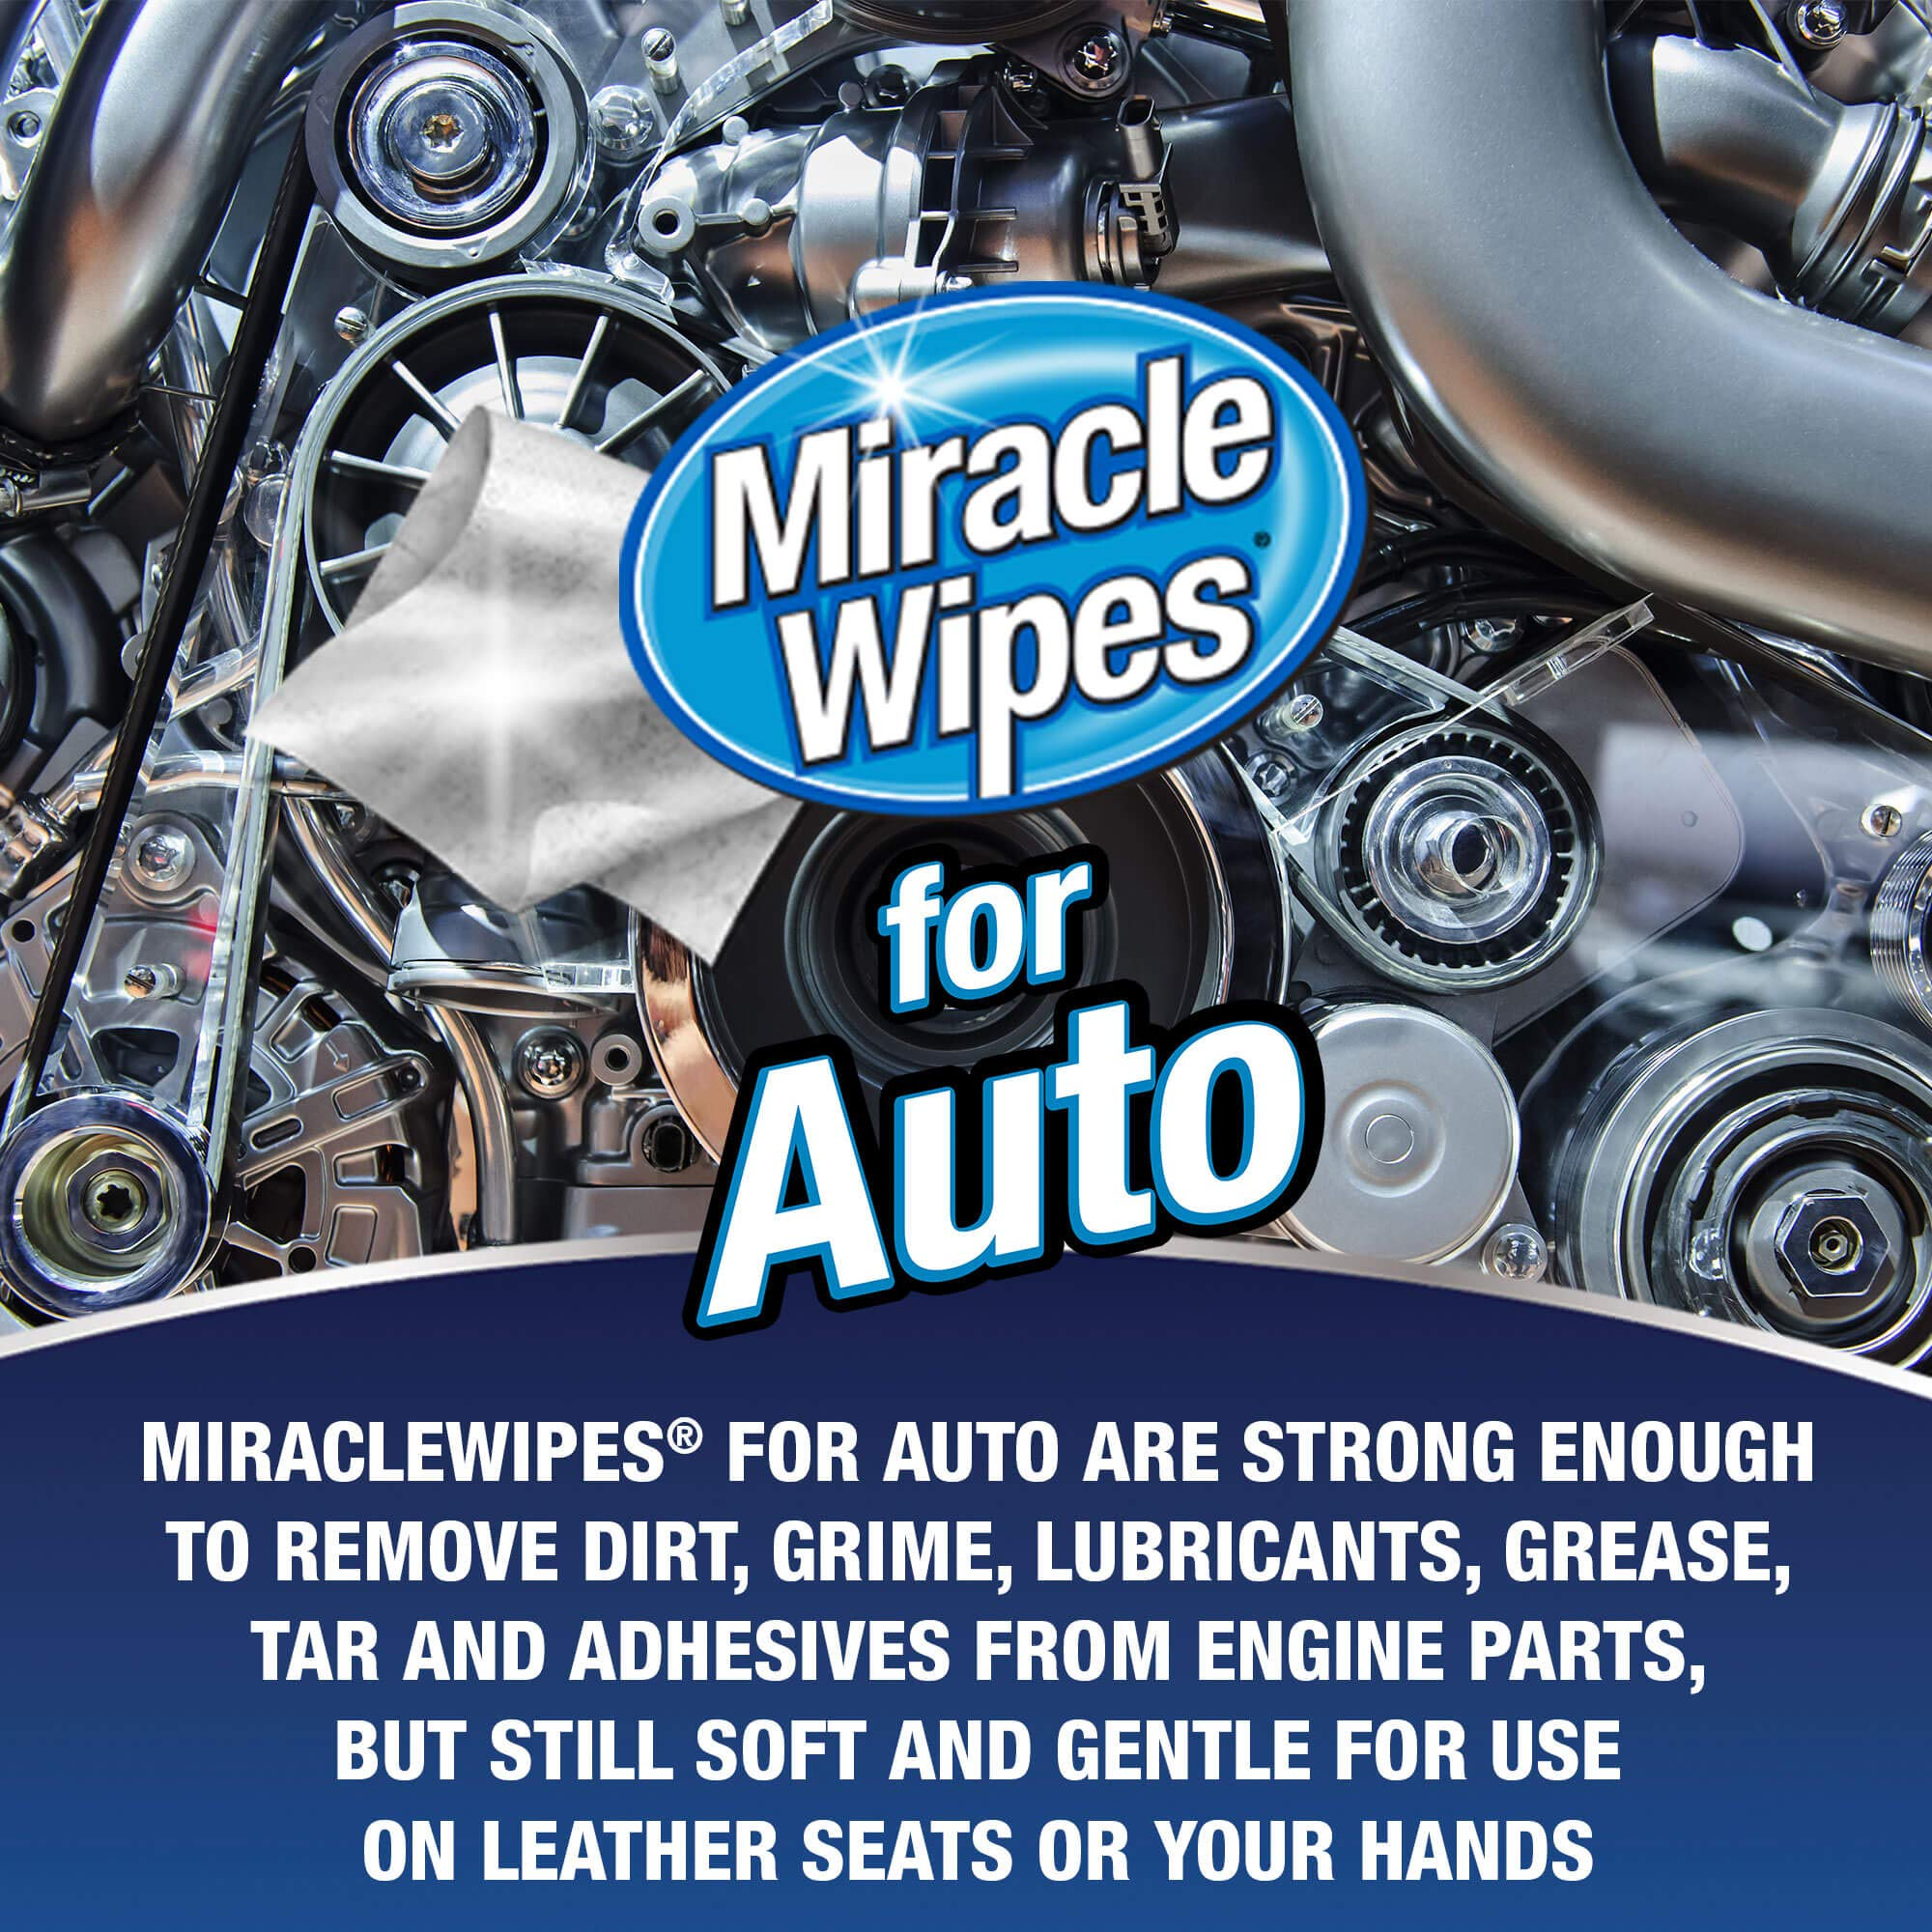 MiracleWipes for Automotive - All Purpose Cleaner, Hands, Interior, Exterior, Detailing - Removes Grease, Lubricants, Sticky Adhesives, Grime, Dirt & More - Car Cleaning Supplies - 6 Pack (90 Count) by MiracleWipes (Image #7)